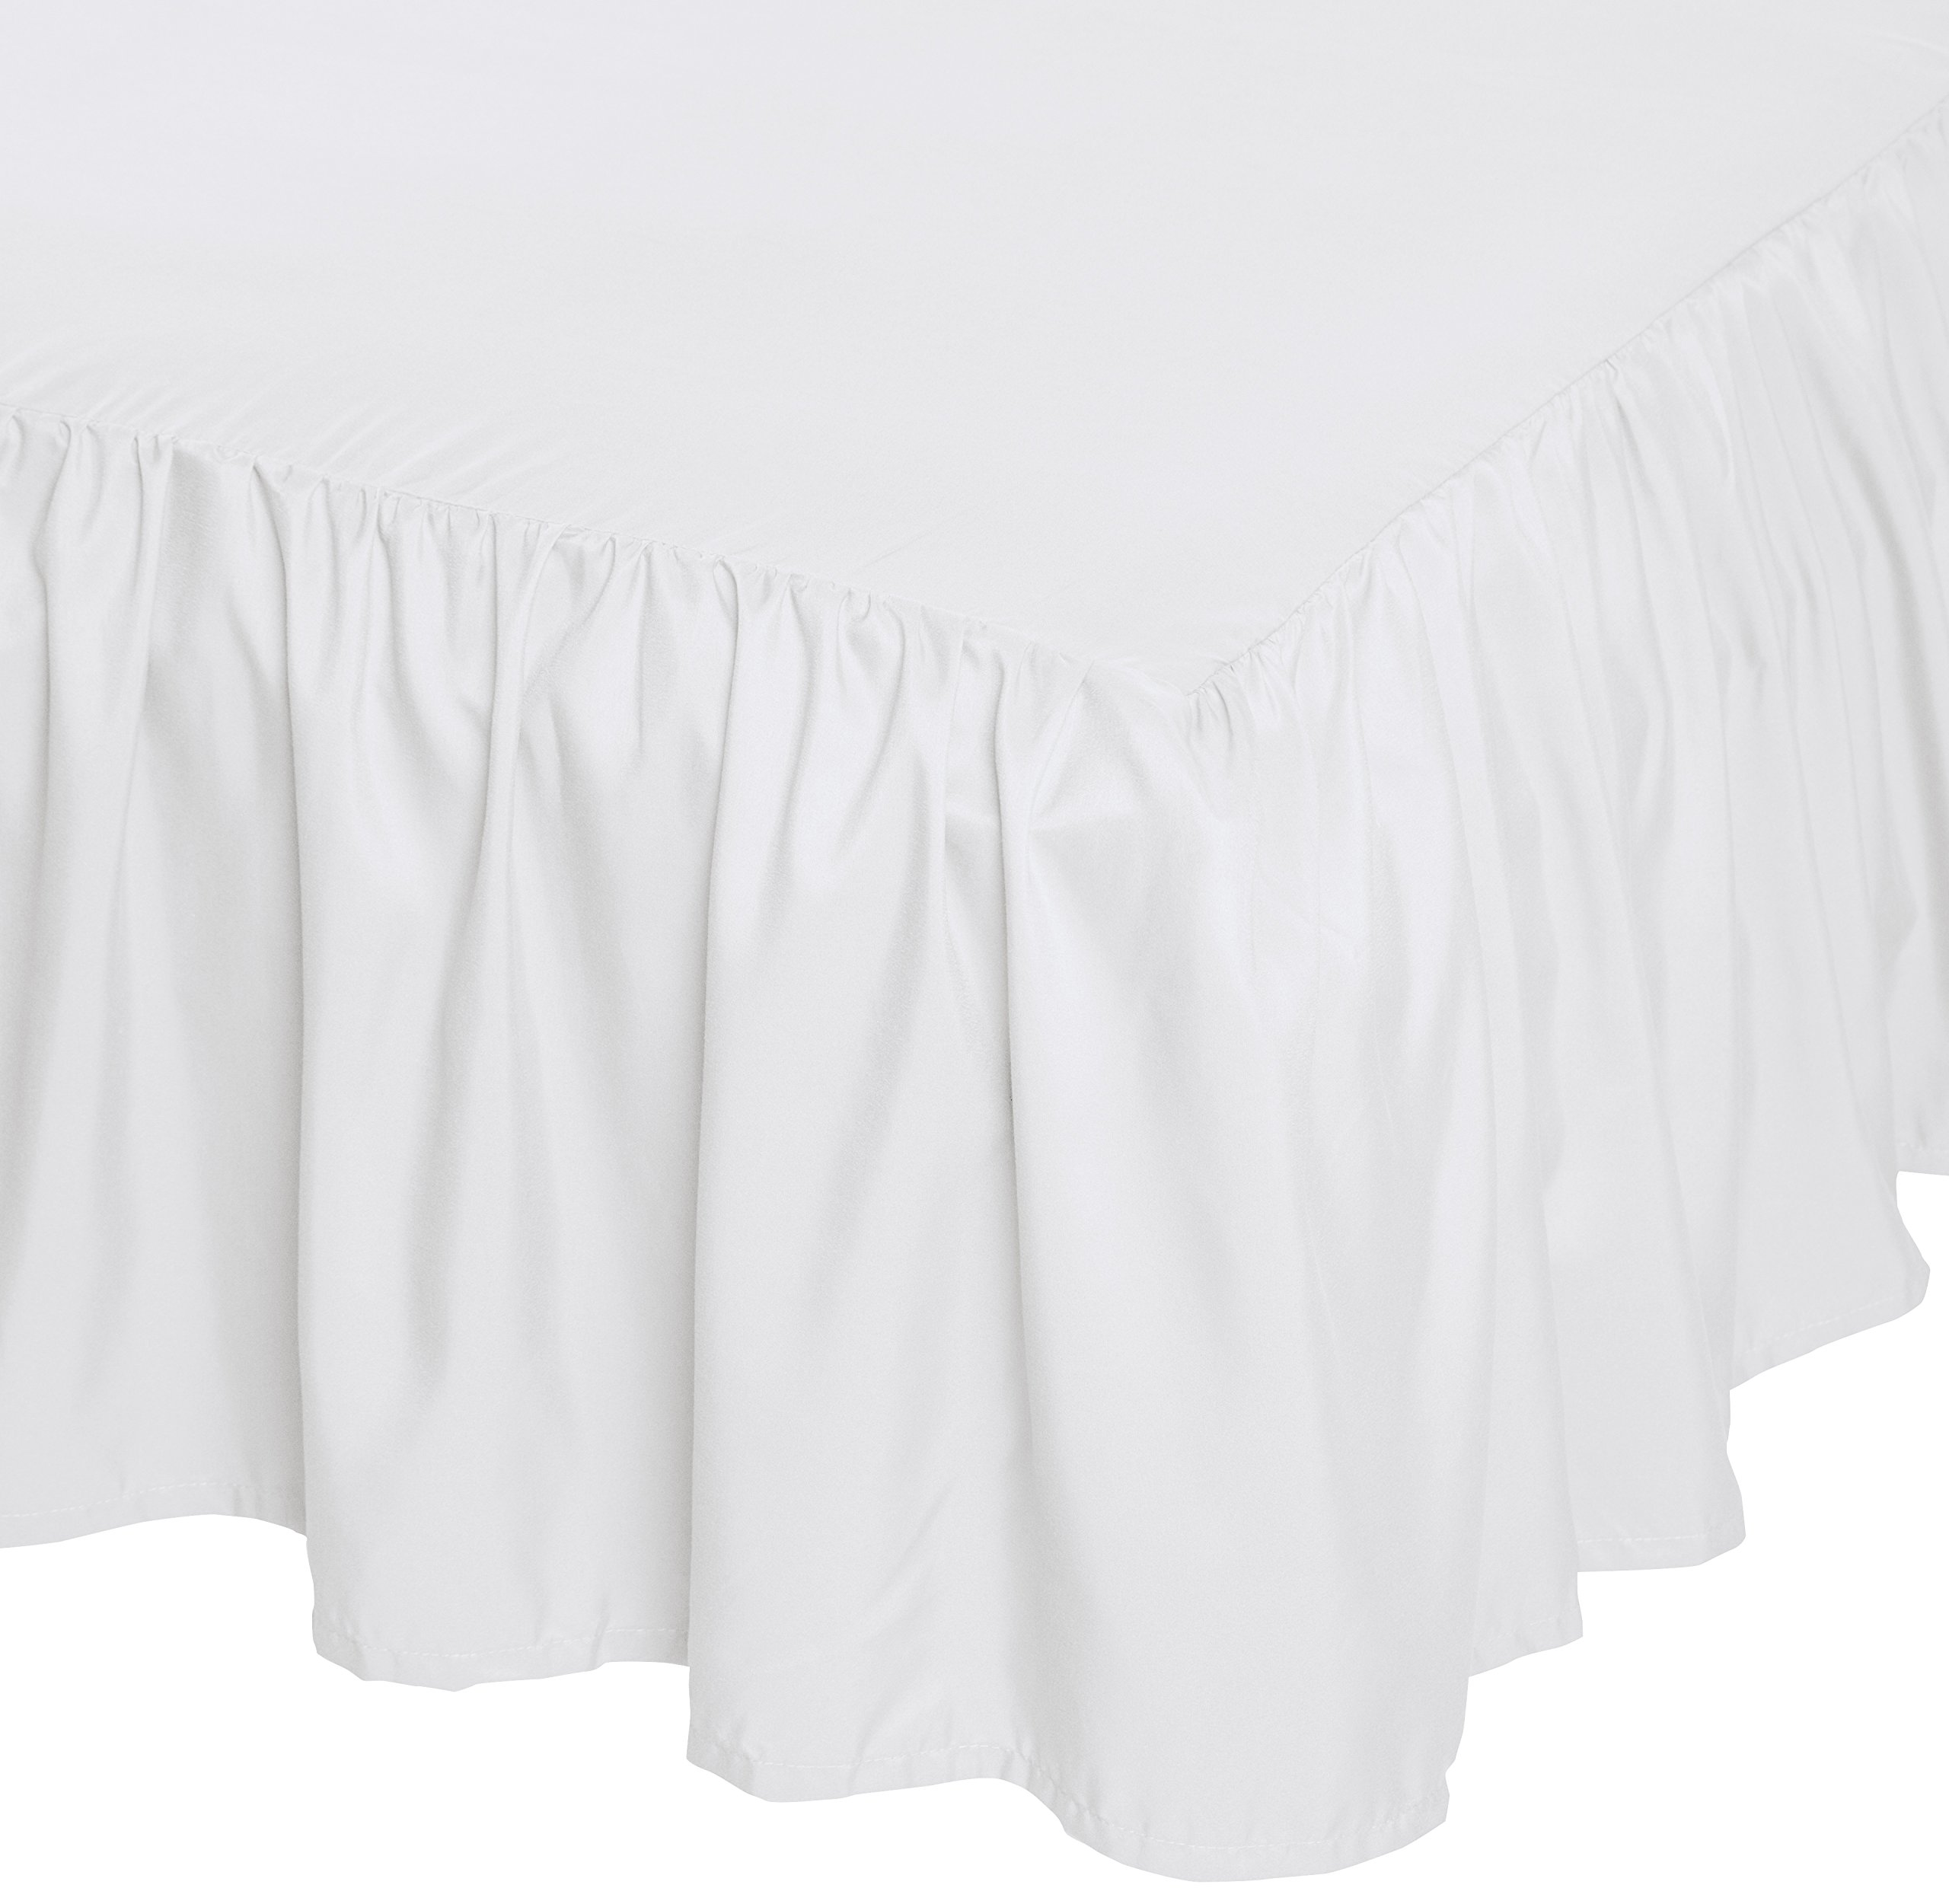 AmazonBasics Ruffled Bed Skirt - Queen, Bright White by AmazonBasics